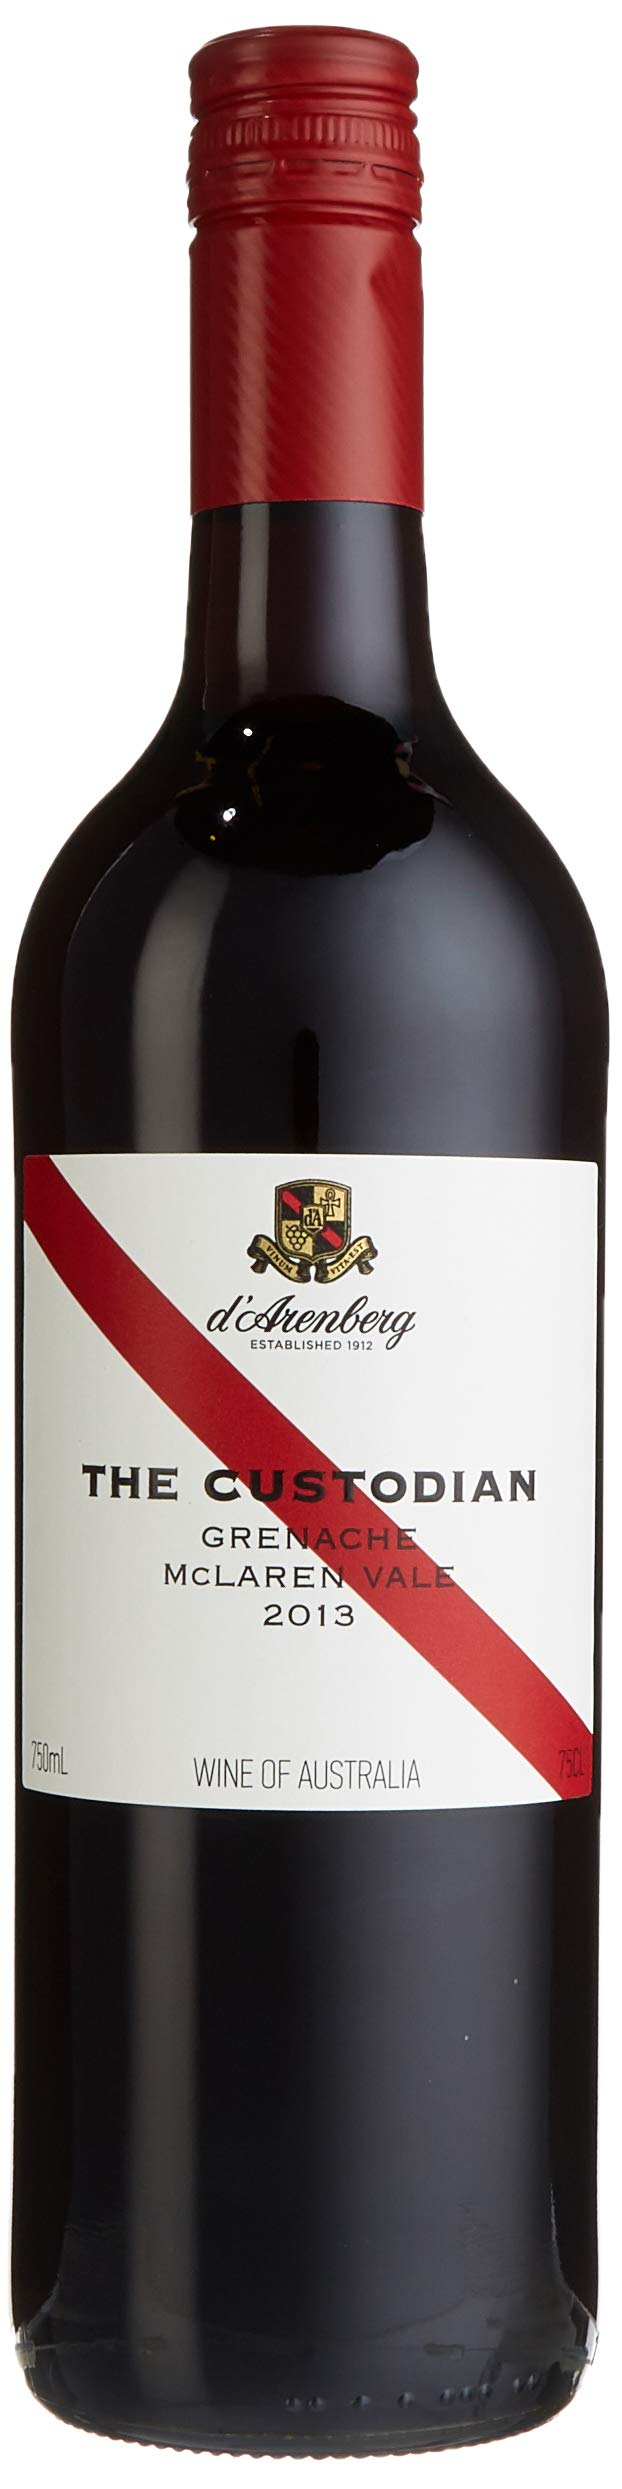 dArenberg-The-Custodian-Grenache-2013-trocken-1-x-075-l